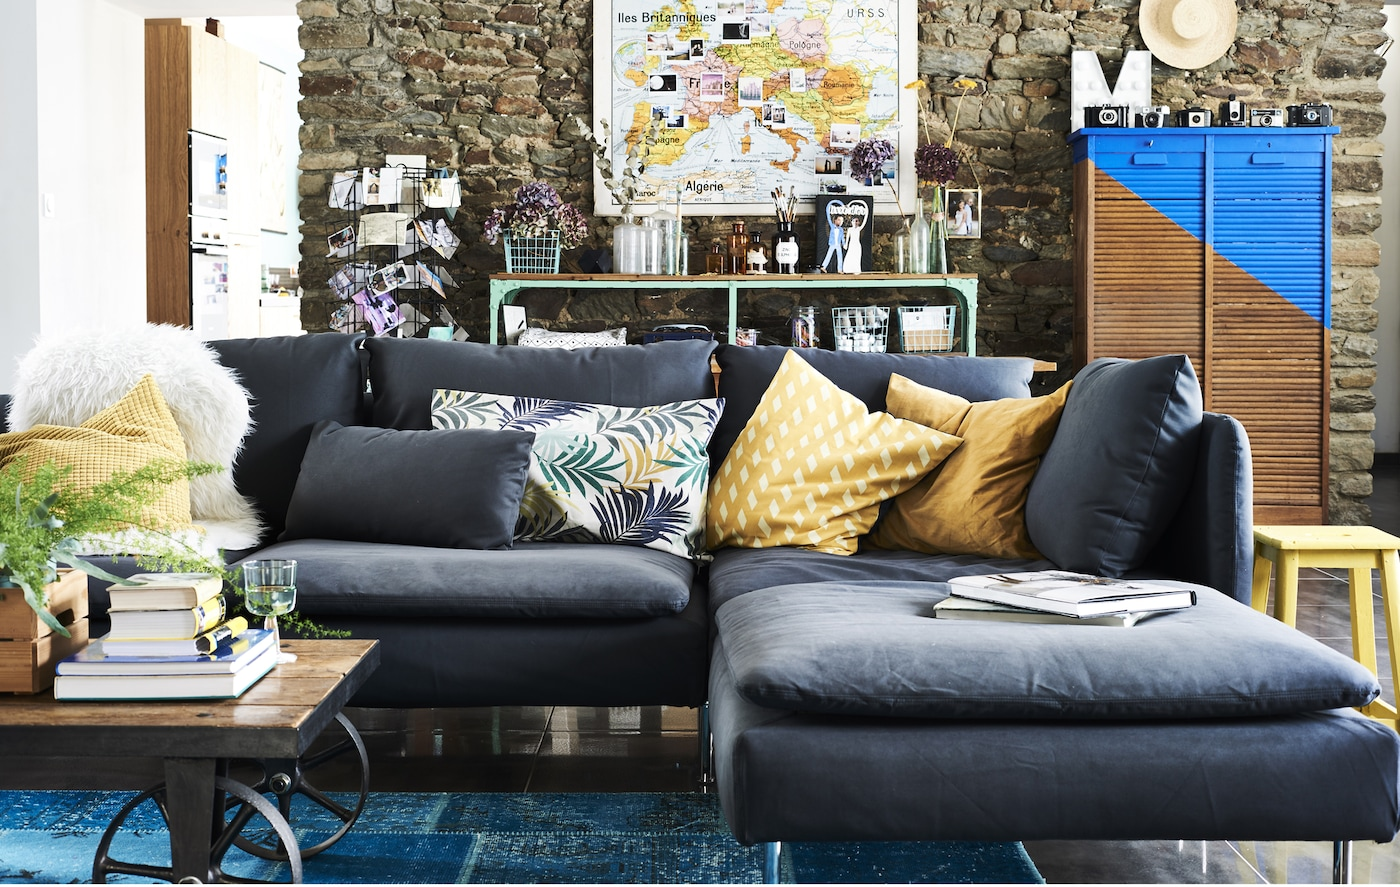 A living room with grey sofa and colourful textiles.